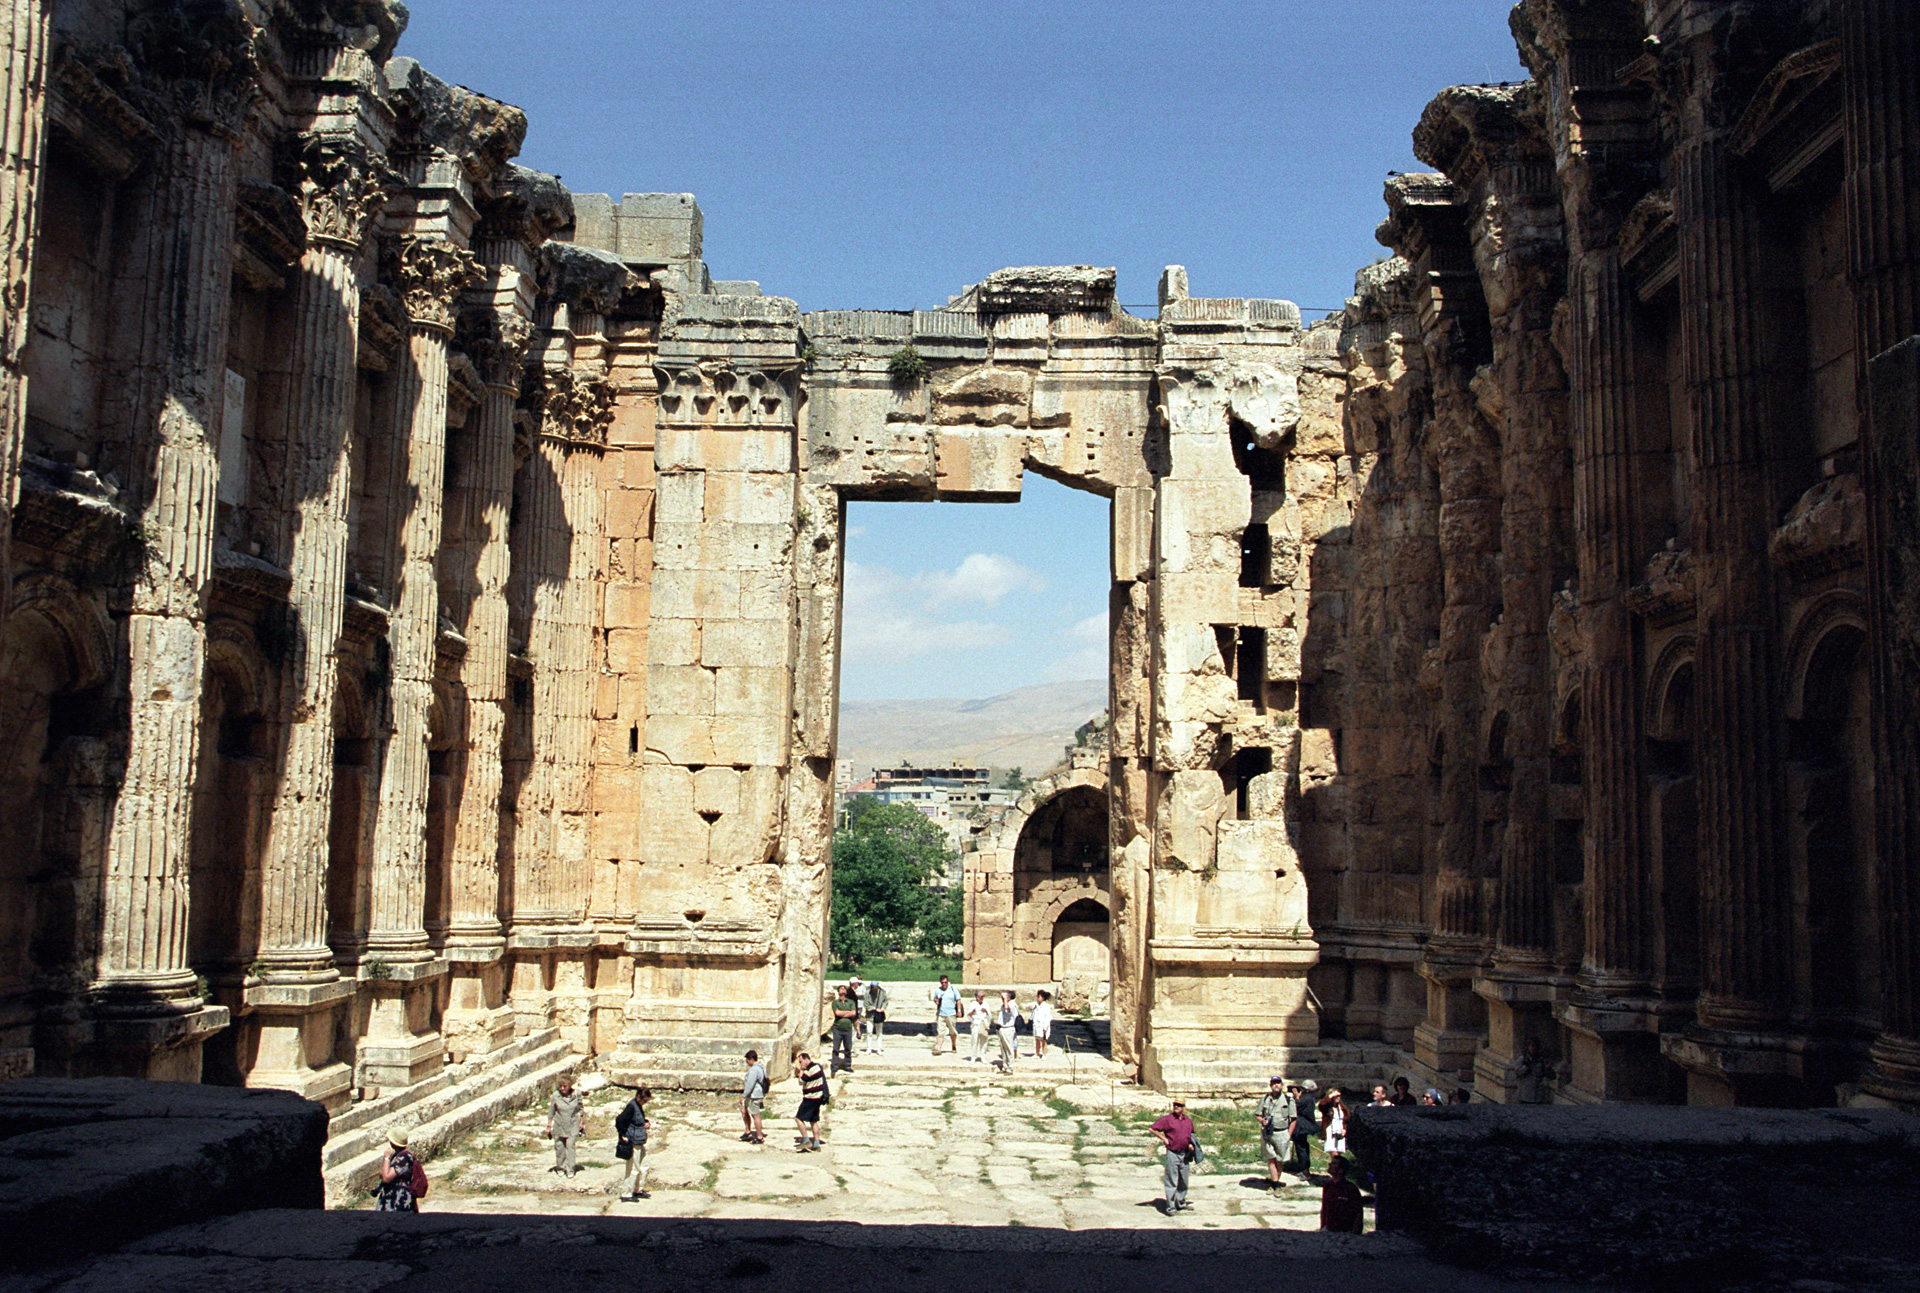 Temple of Bacchus Baalbek, Baalbek Interior Temple of Bacchus « UFO-Contact News